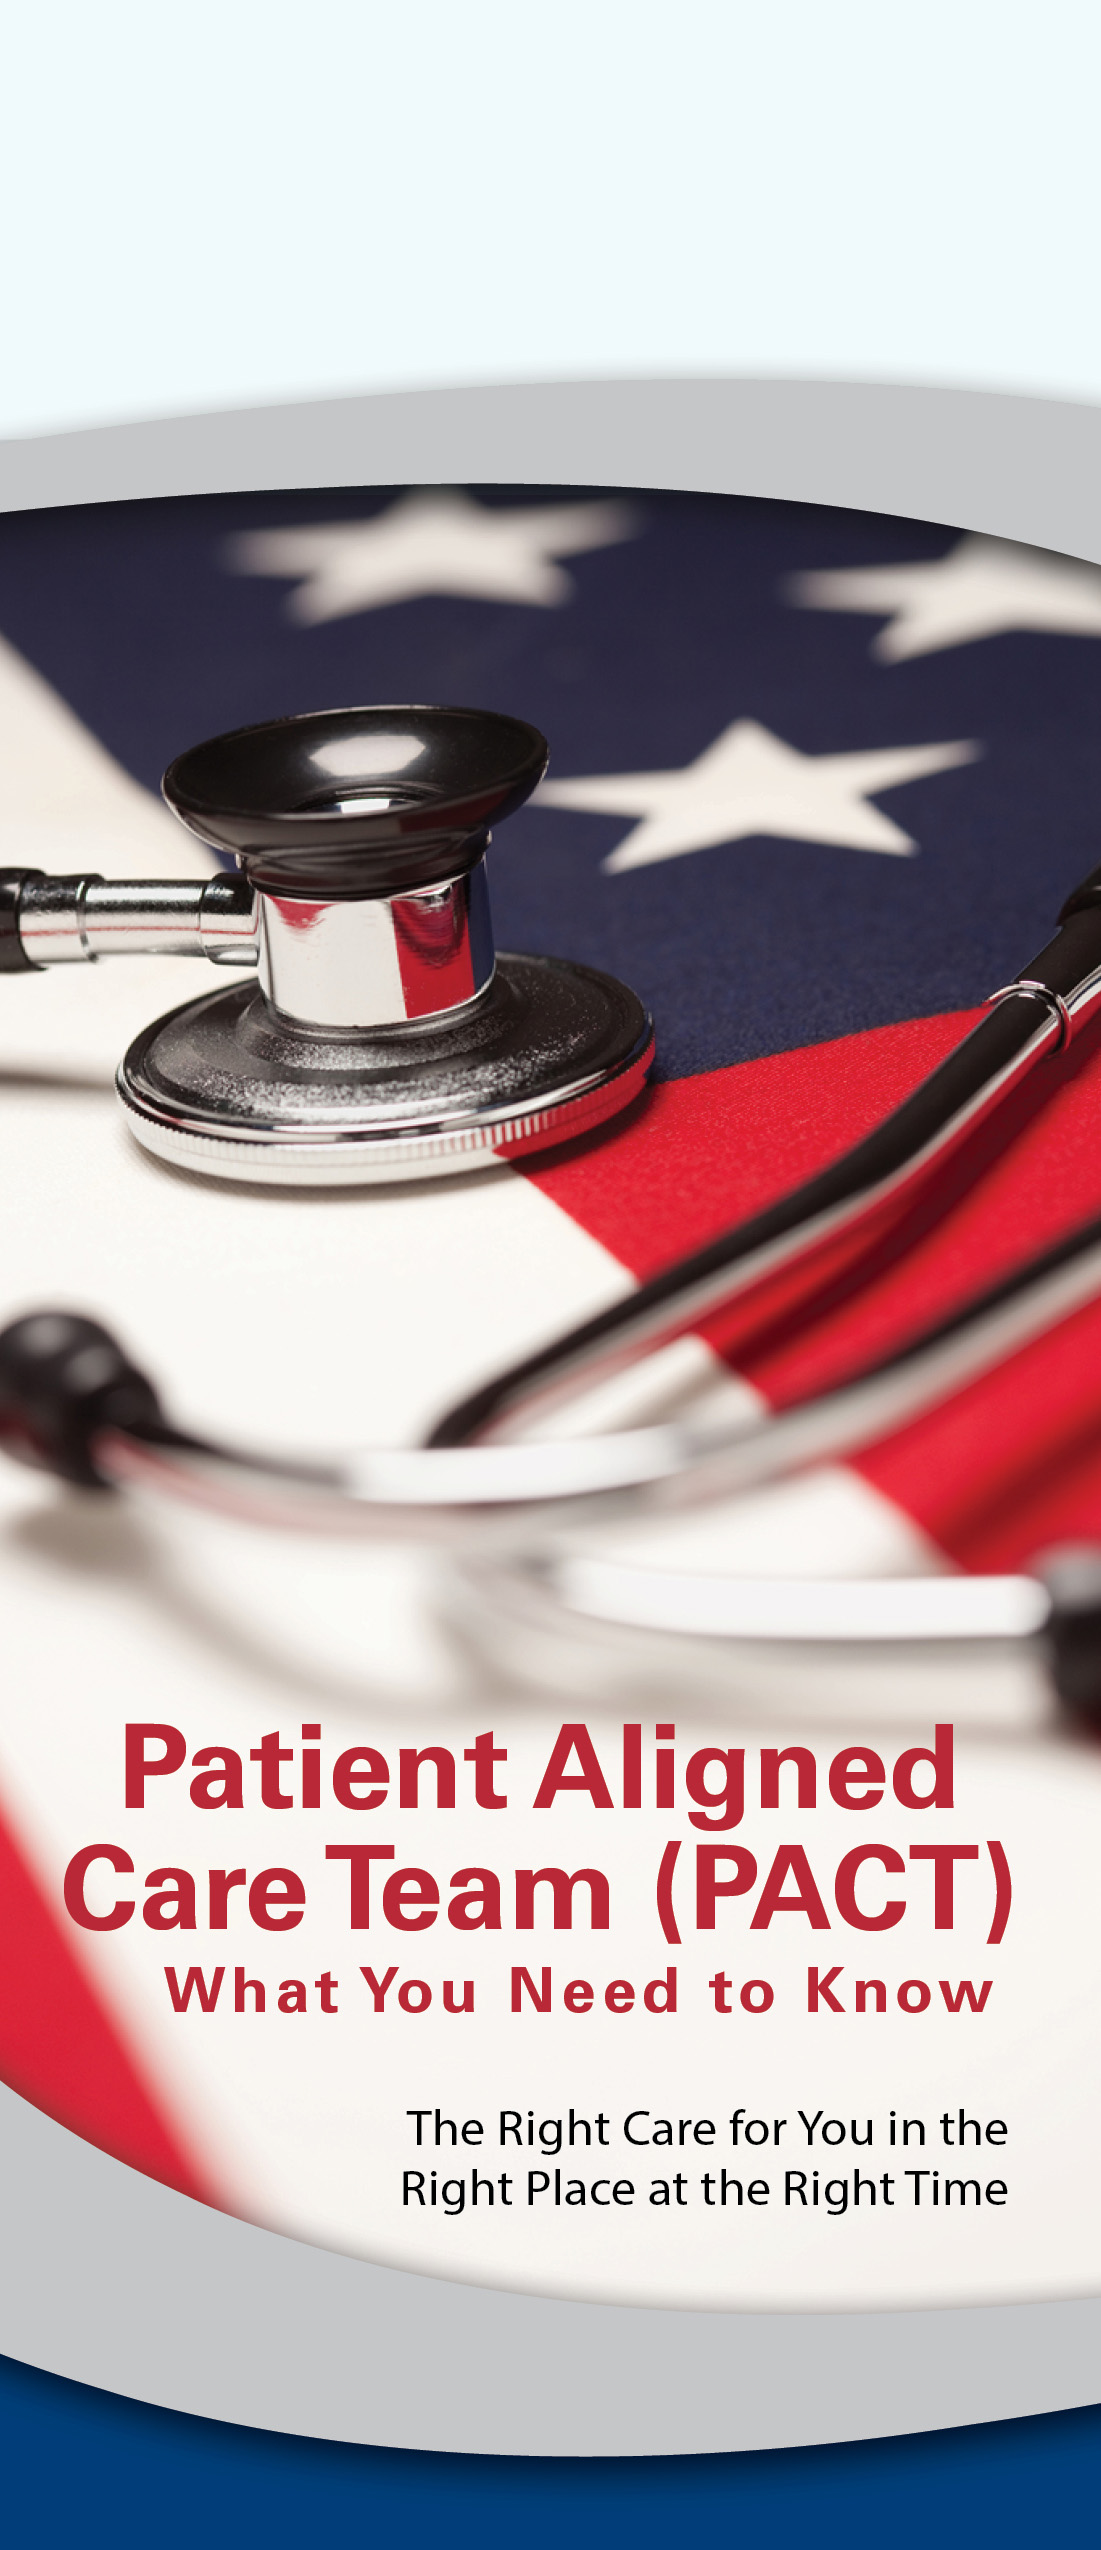 Patient Aligned Care